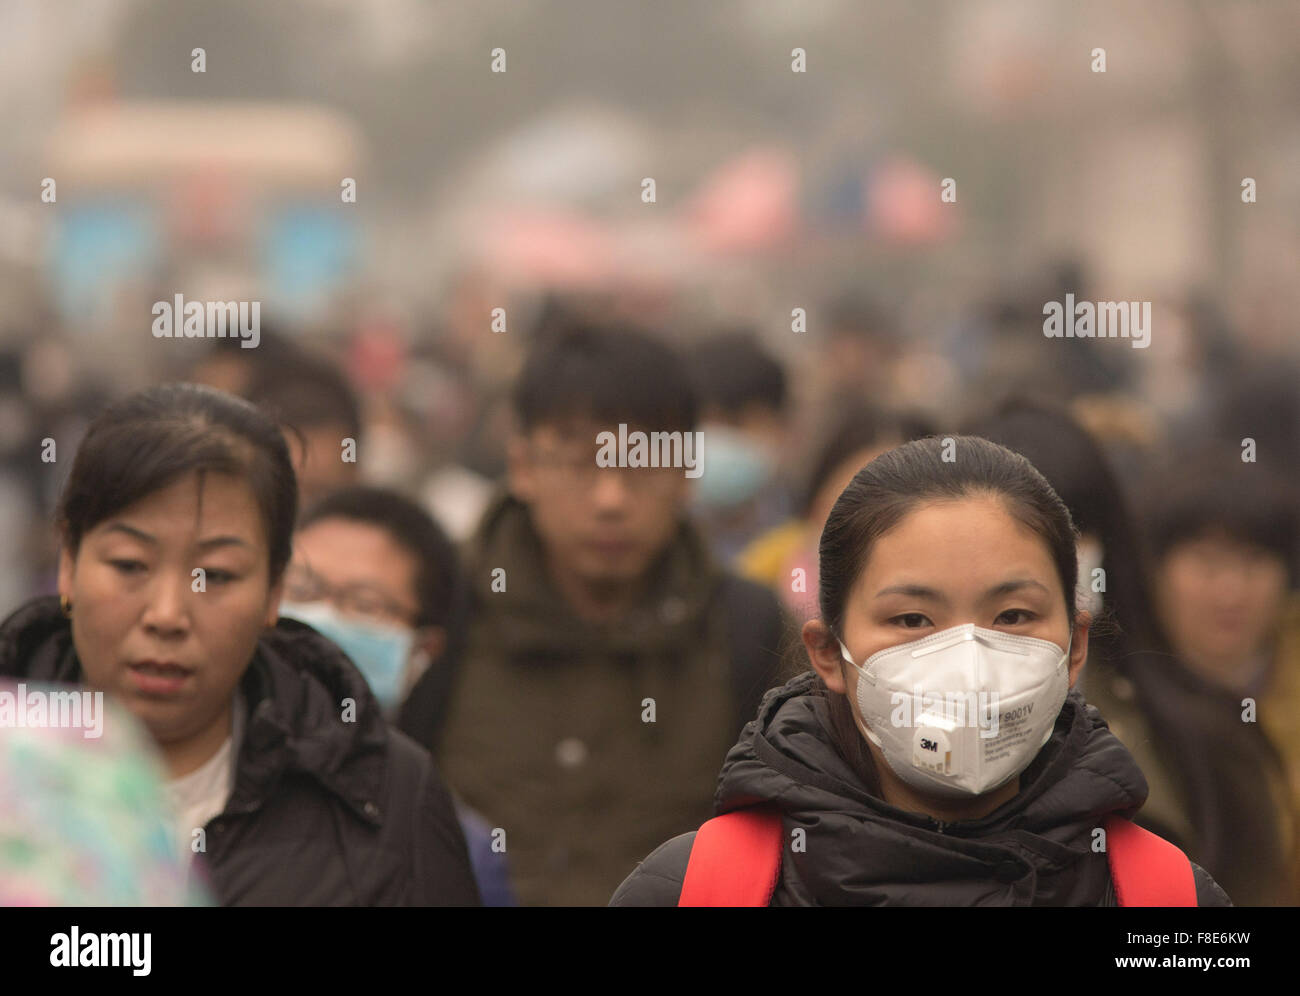 People and commuters wear face masks on their way to work, braving heavy air pollution in the Chinese capital city Stock Photo